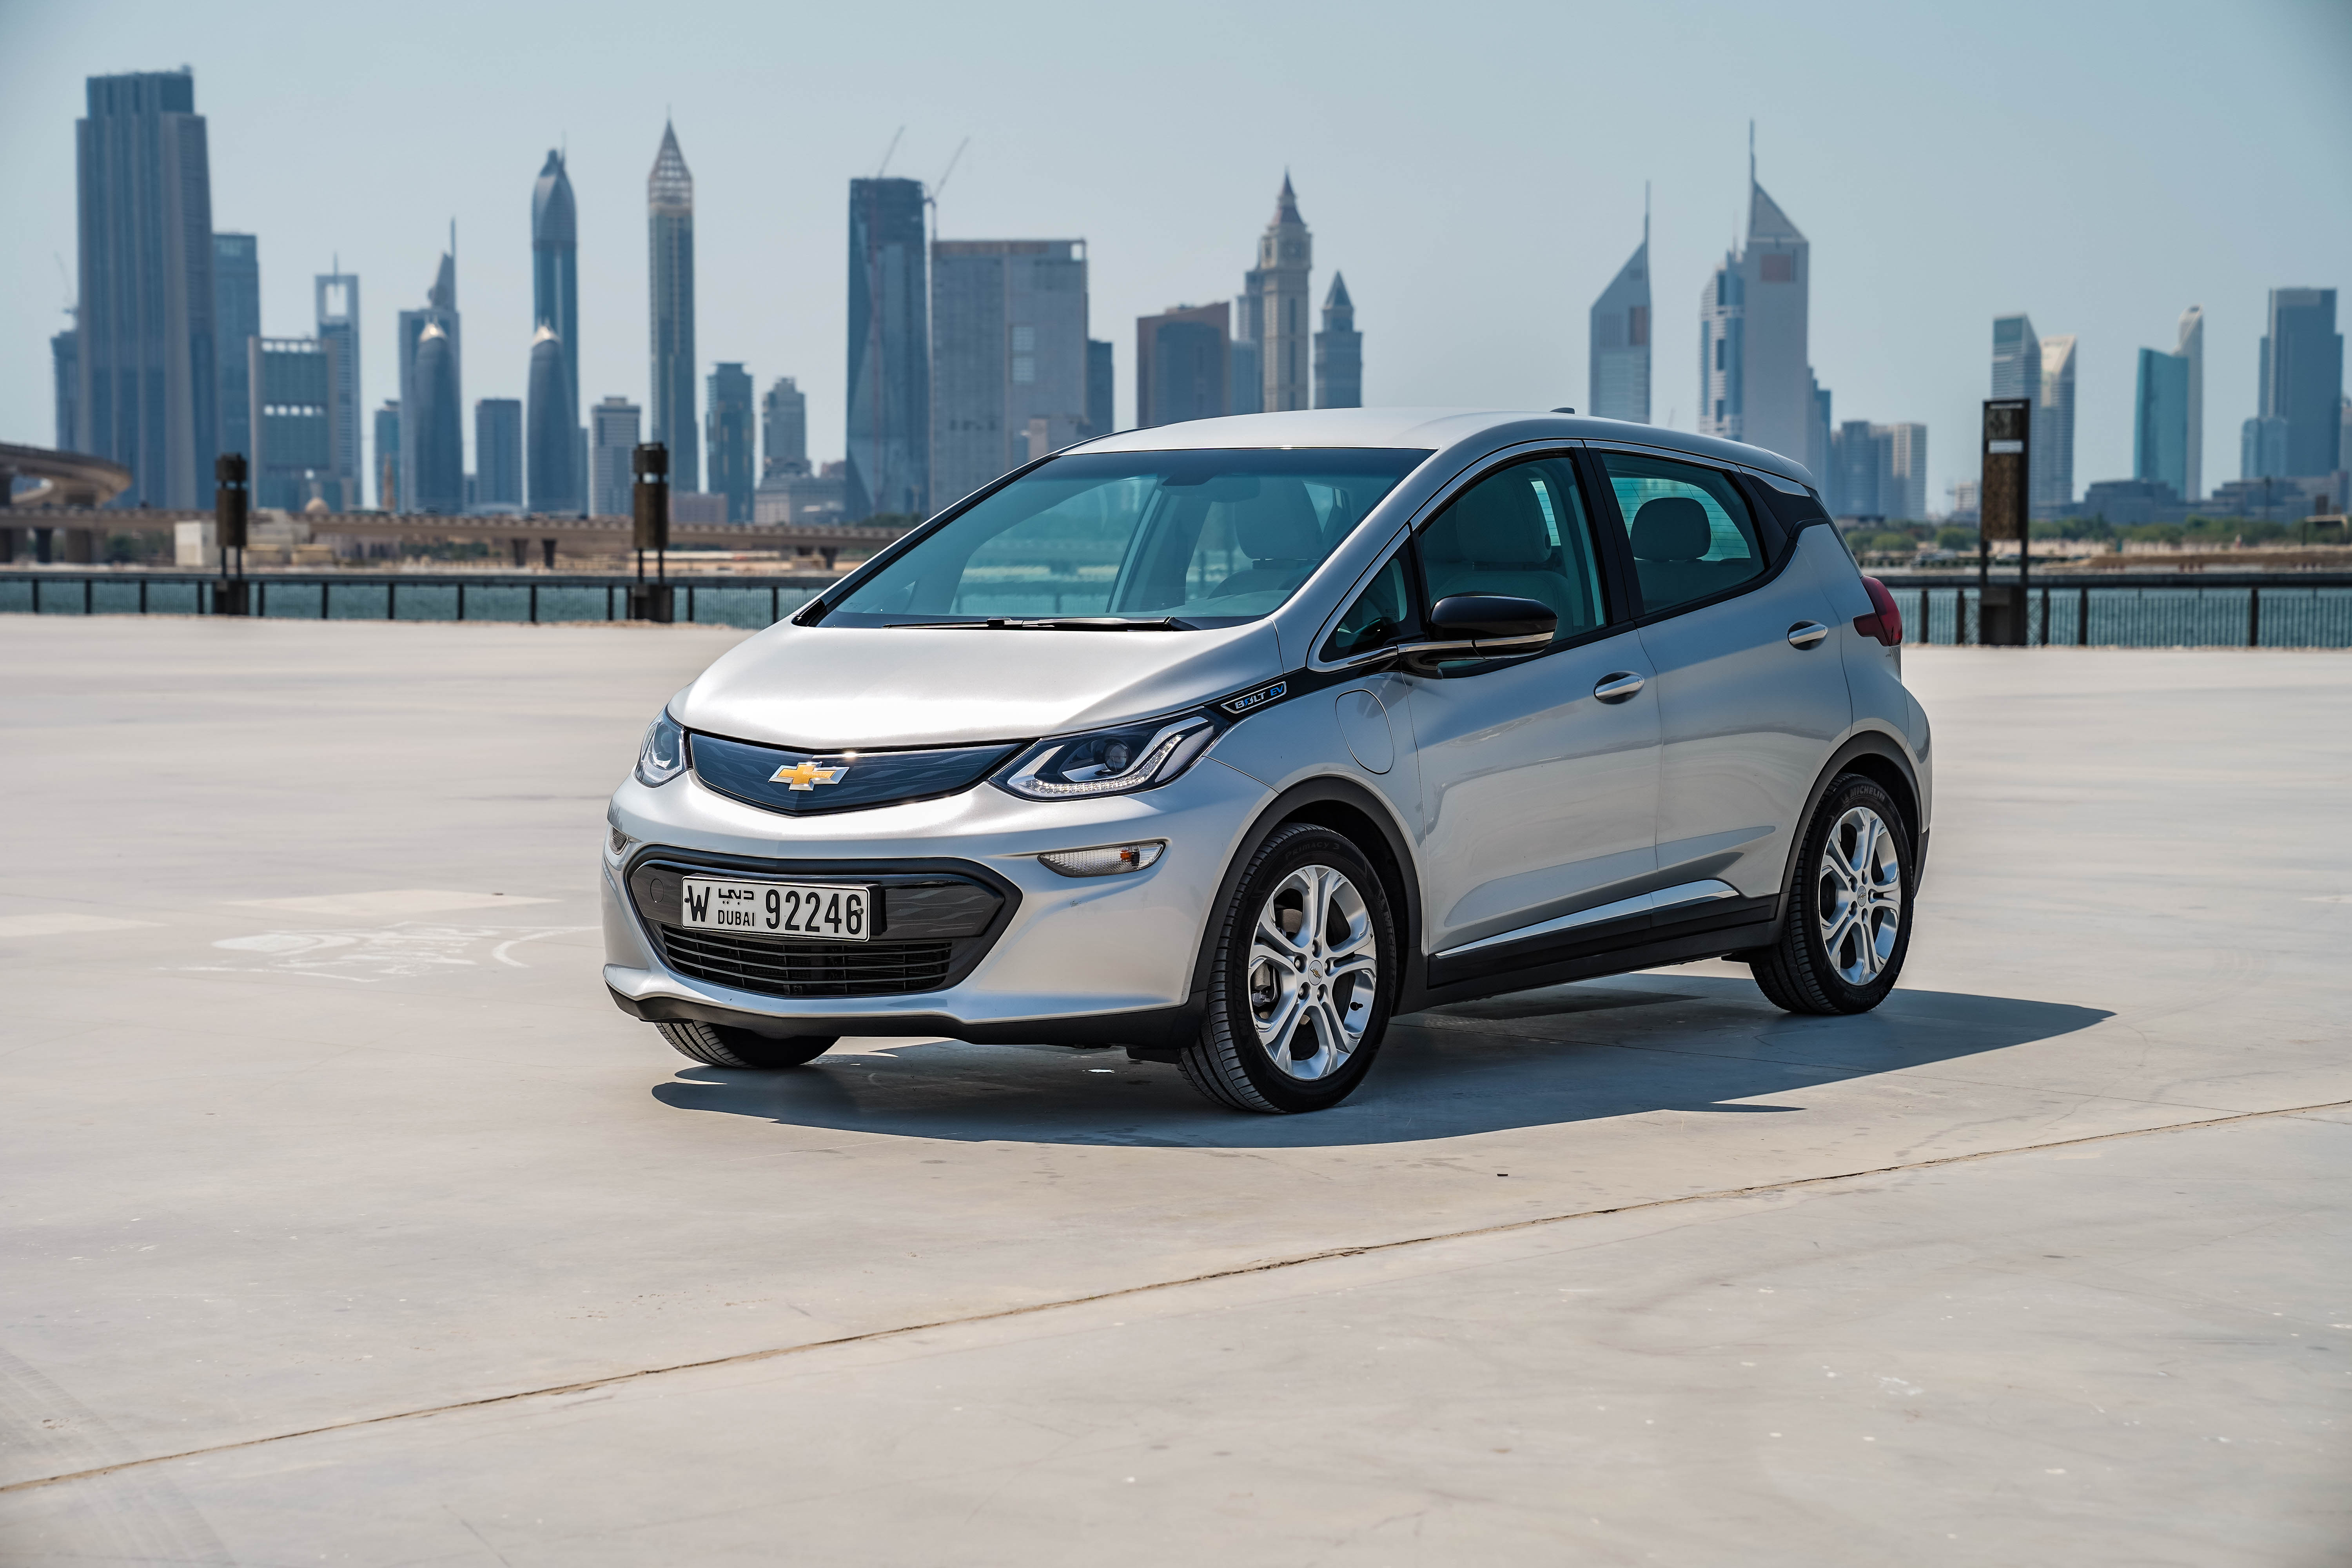 General Motors commitment to a Zero Emissions tomorrow